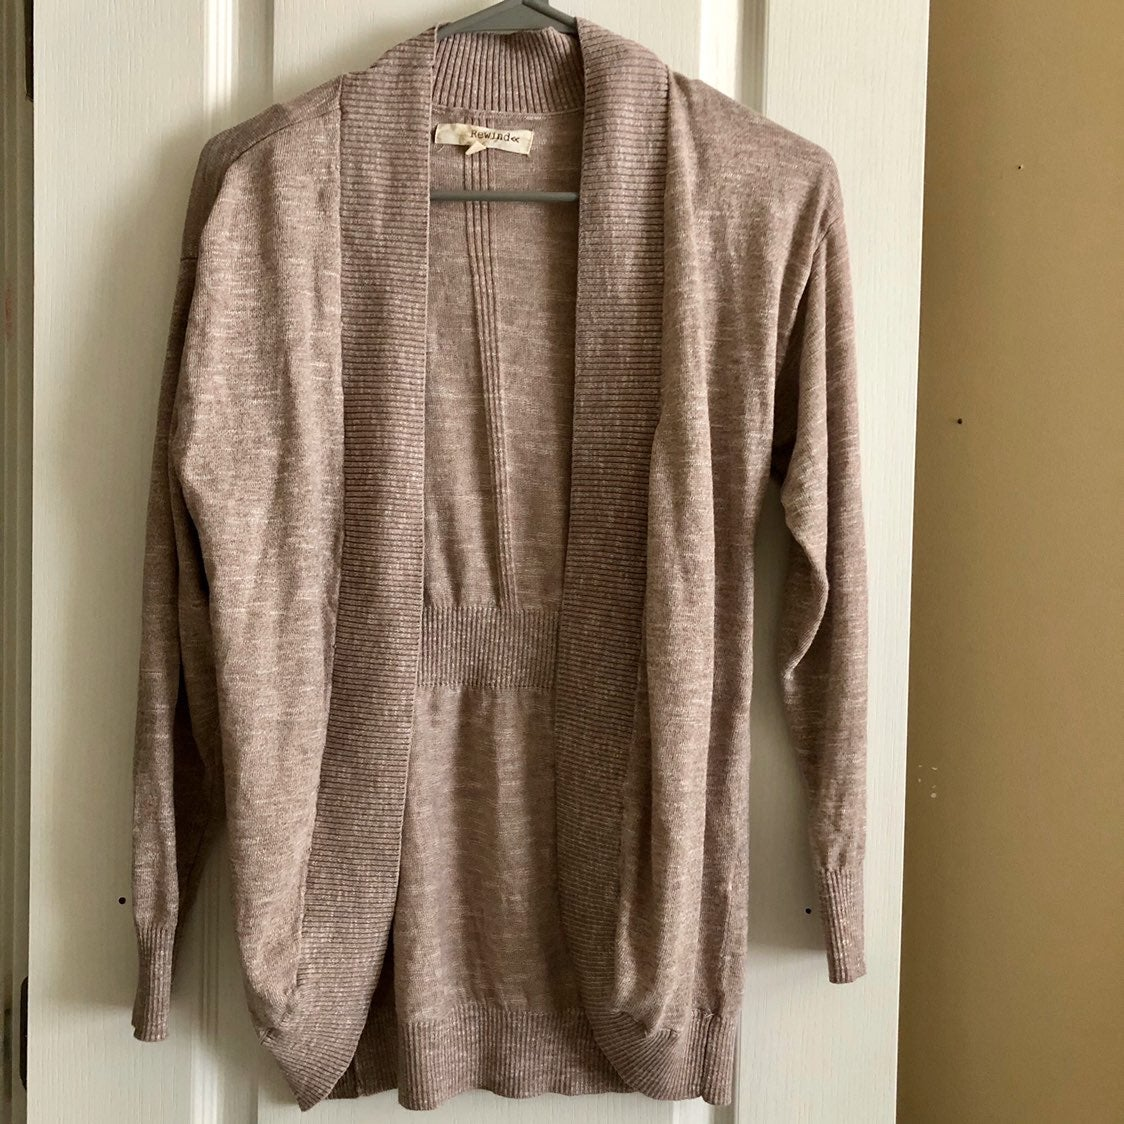 NWOT Women's Rewind Sweater